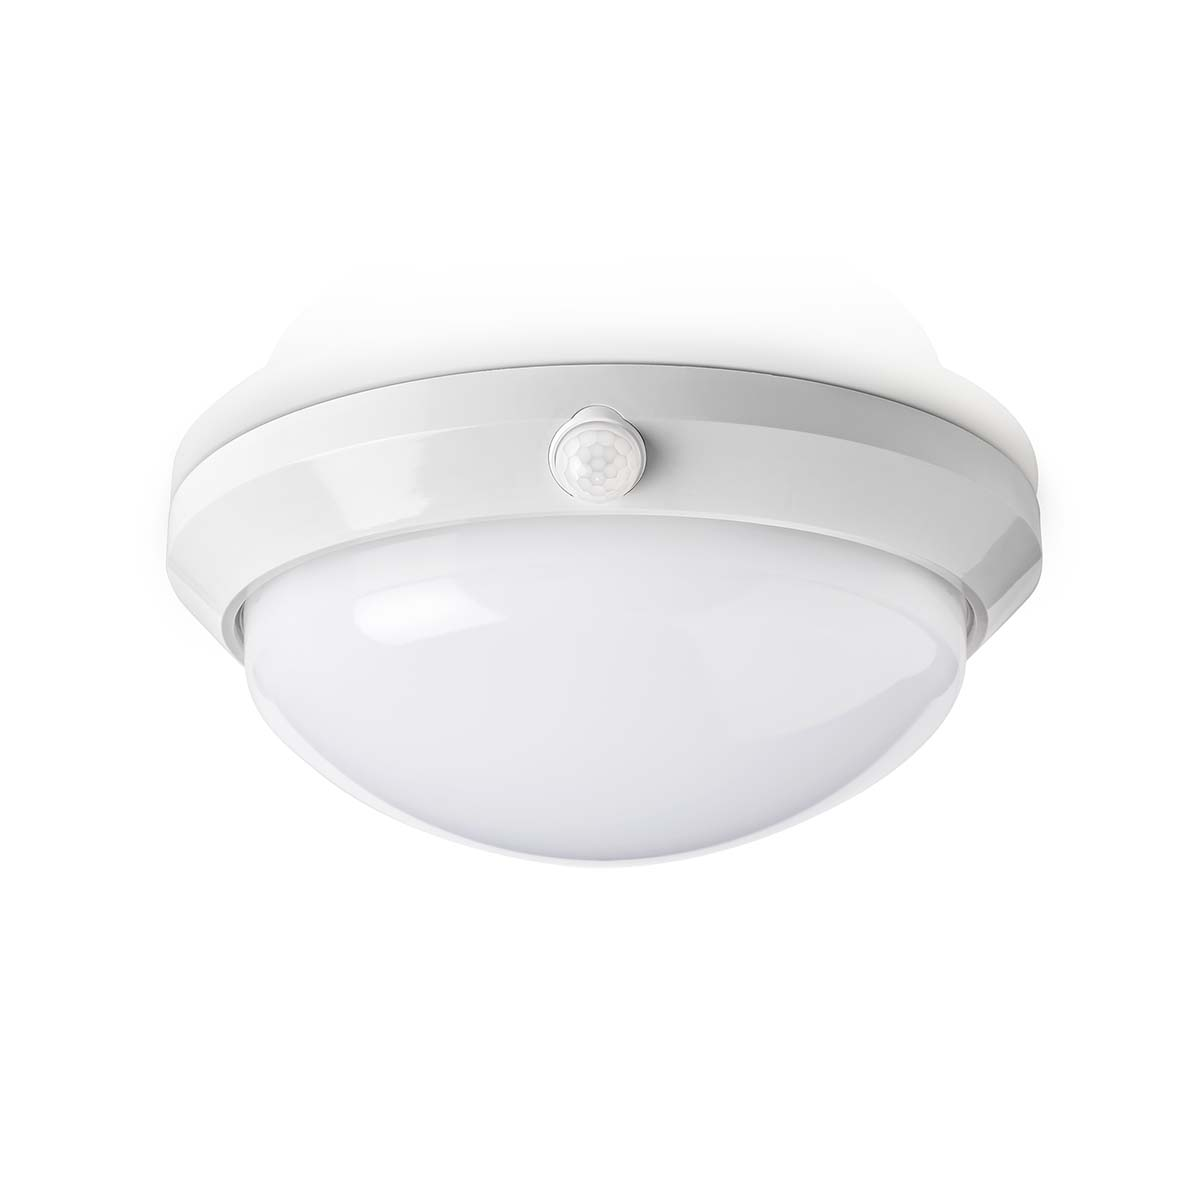 Led Ceiling Light With Sensor And